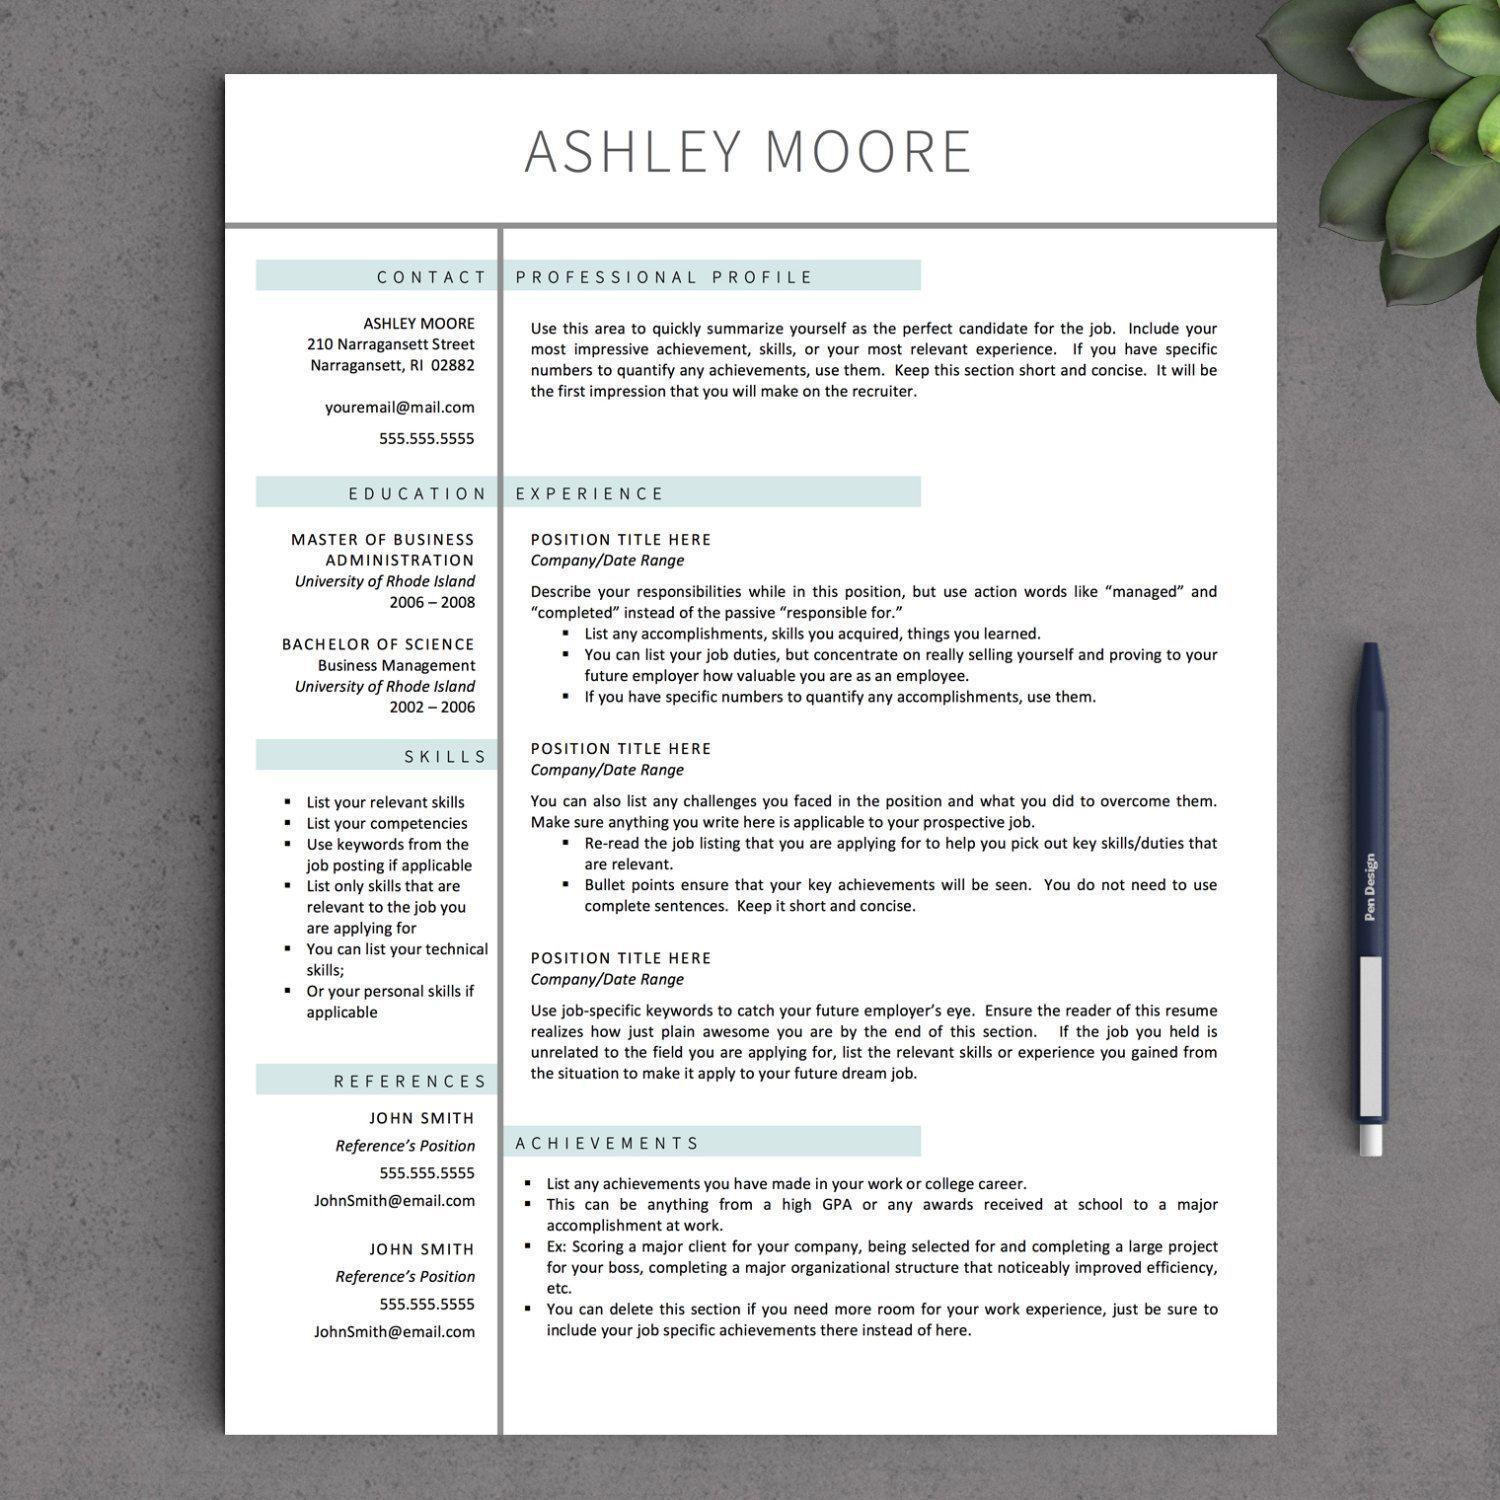 005 Striking Download Free Resume Template For Mac Page High Resolution  PagesFull